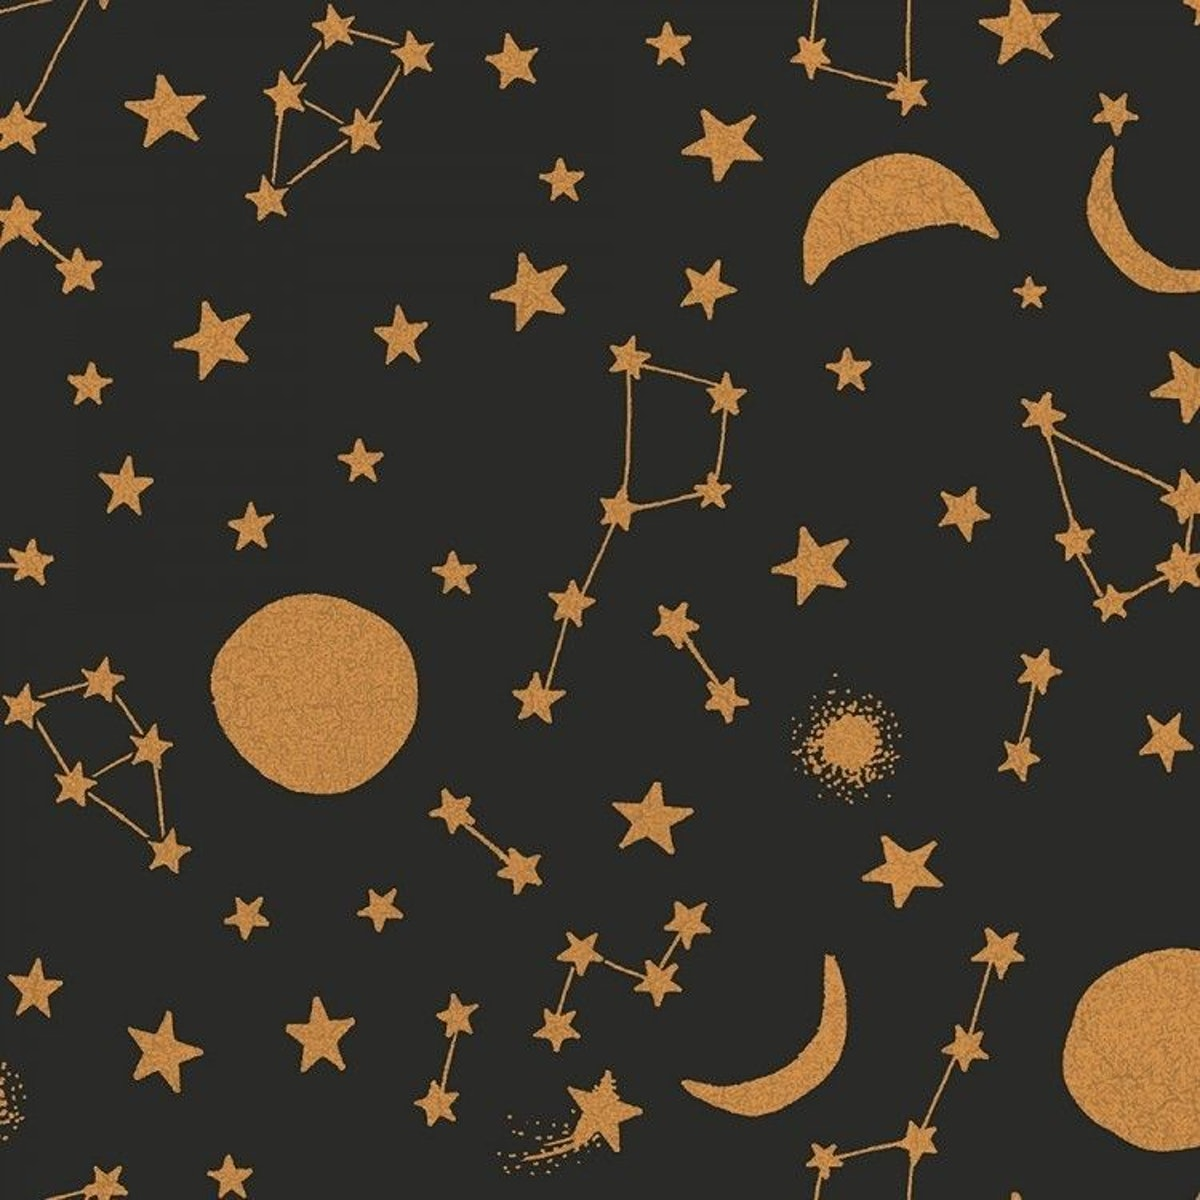 Celestial Self-Adhesive Removable Wallpaper